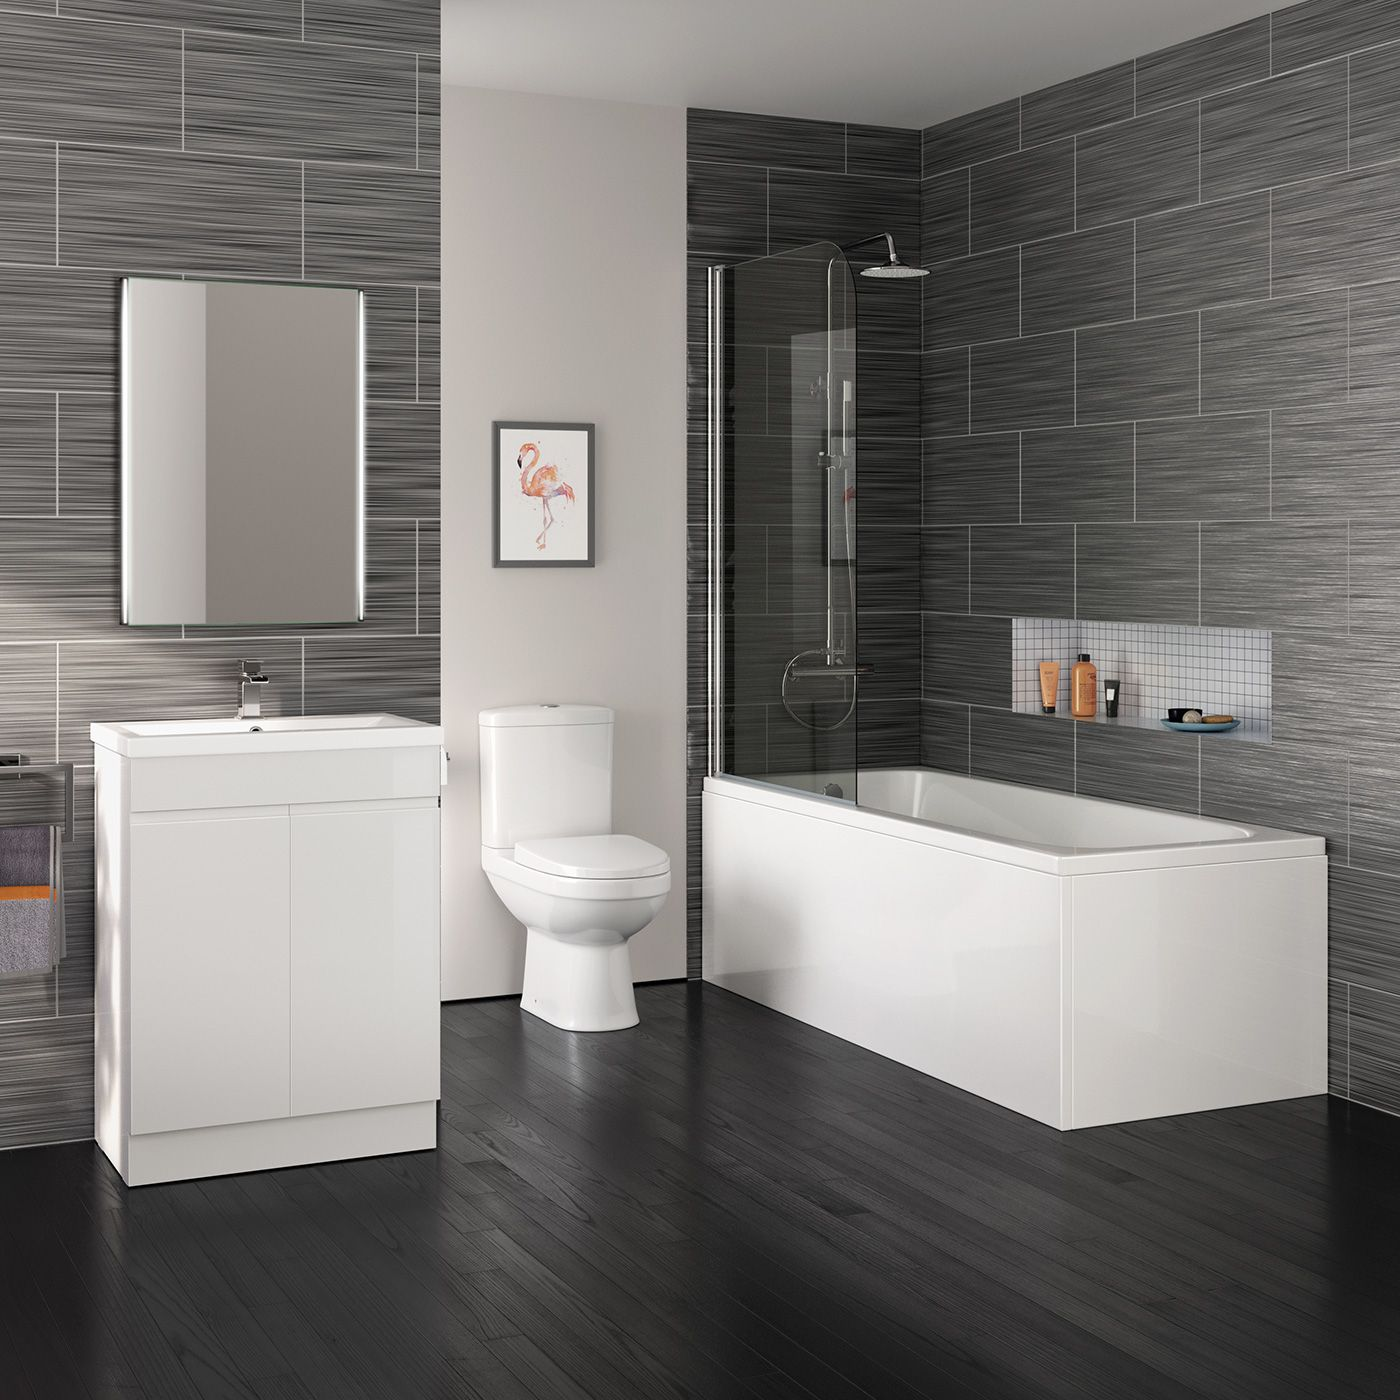 Trent bathroom suites - Are You Looking For The Bathroom Of Your Dreams Stunning At Low Prices With